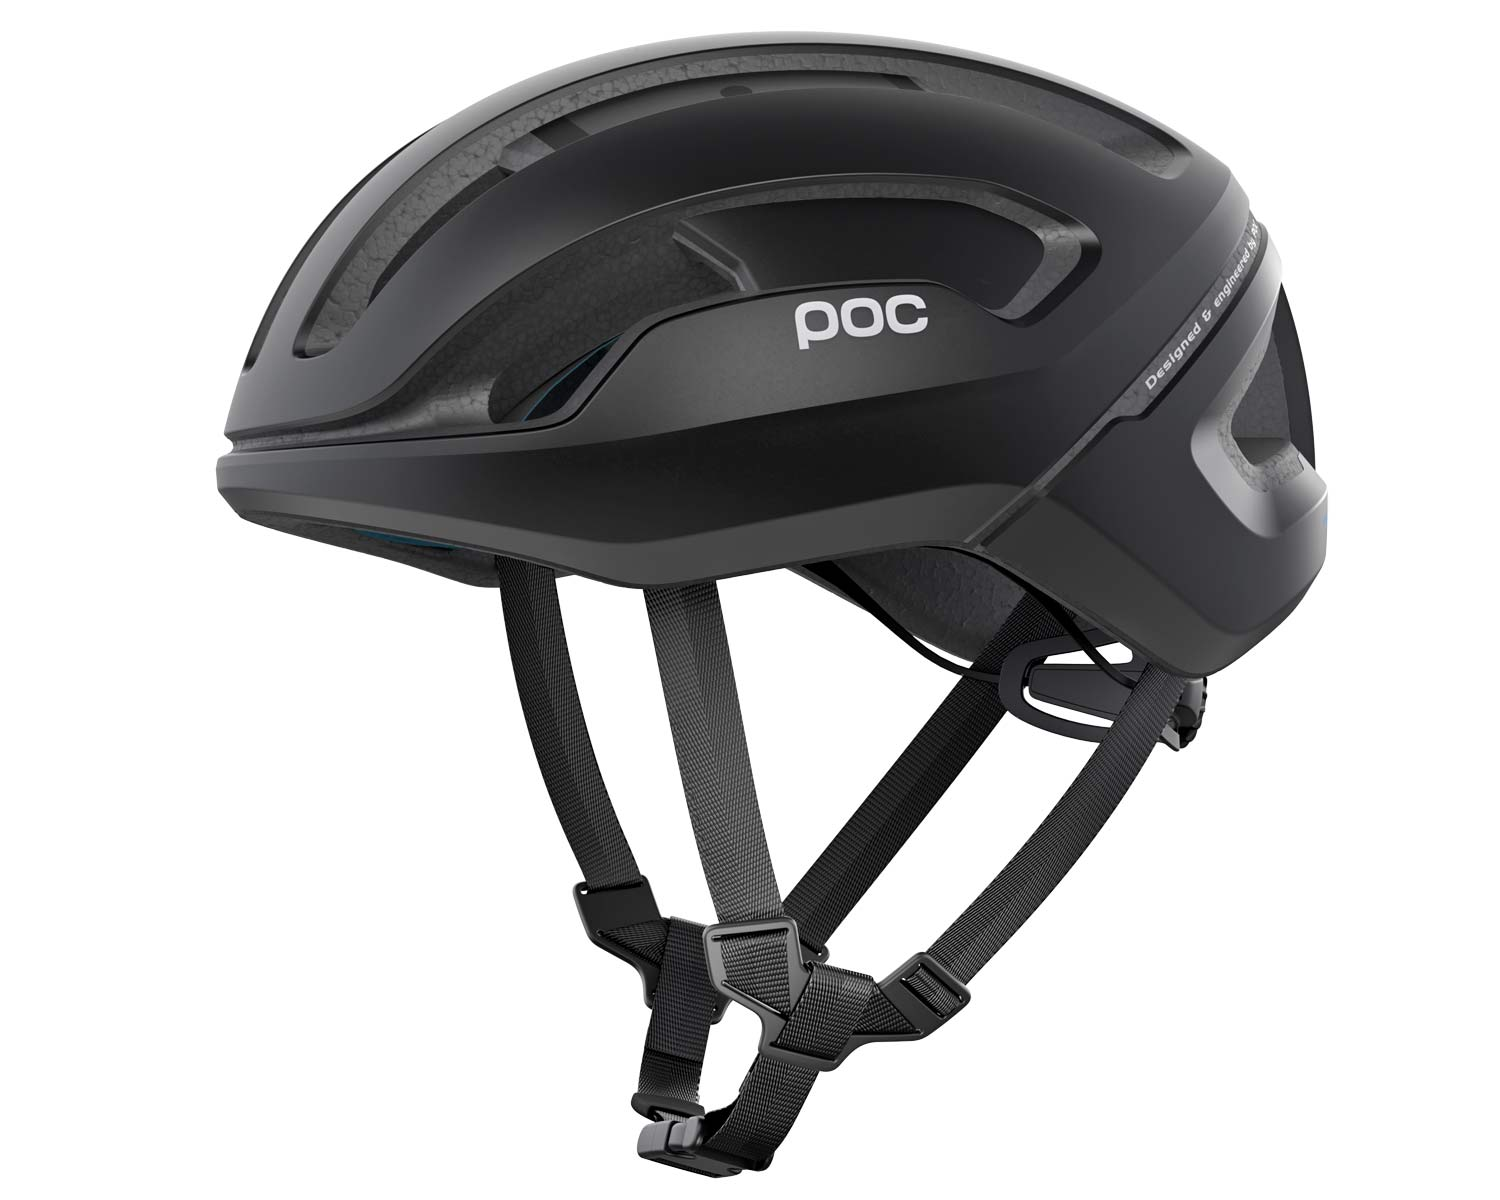 POC Omne Eternal solar-powered helmet with integrated lighting, side